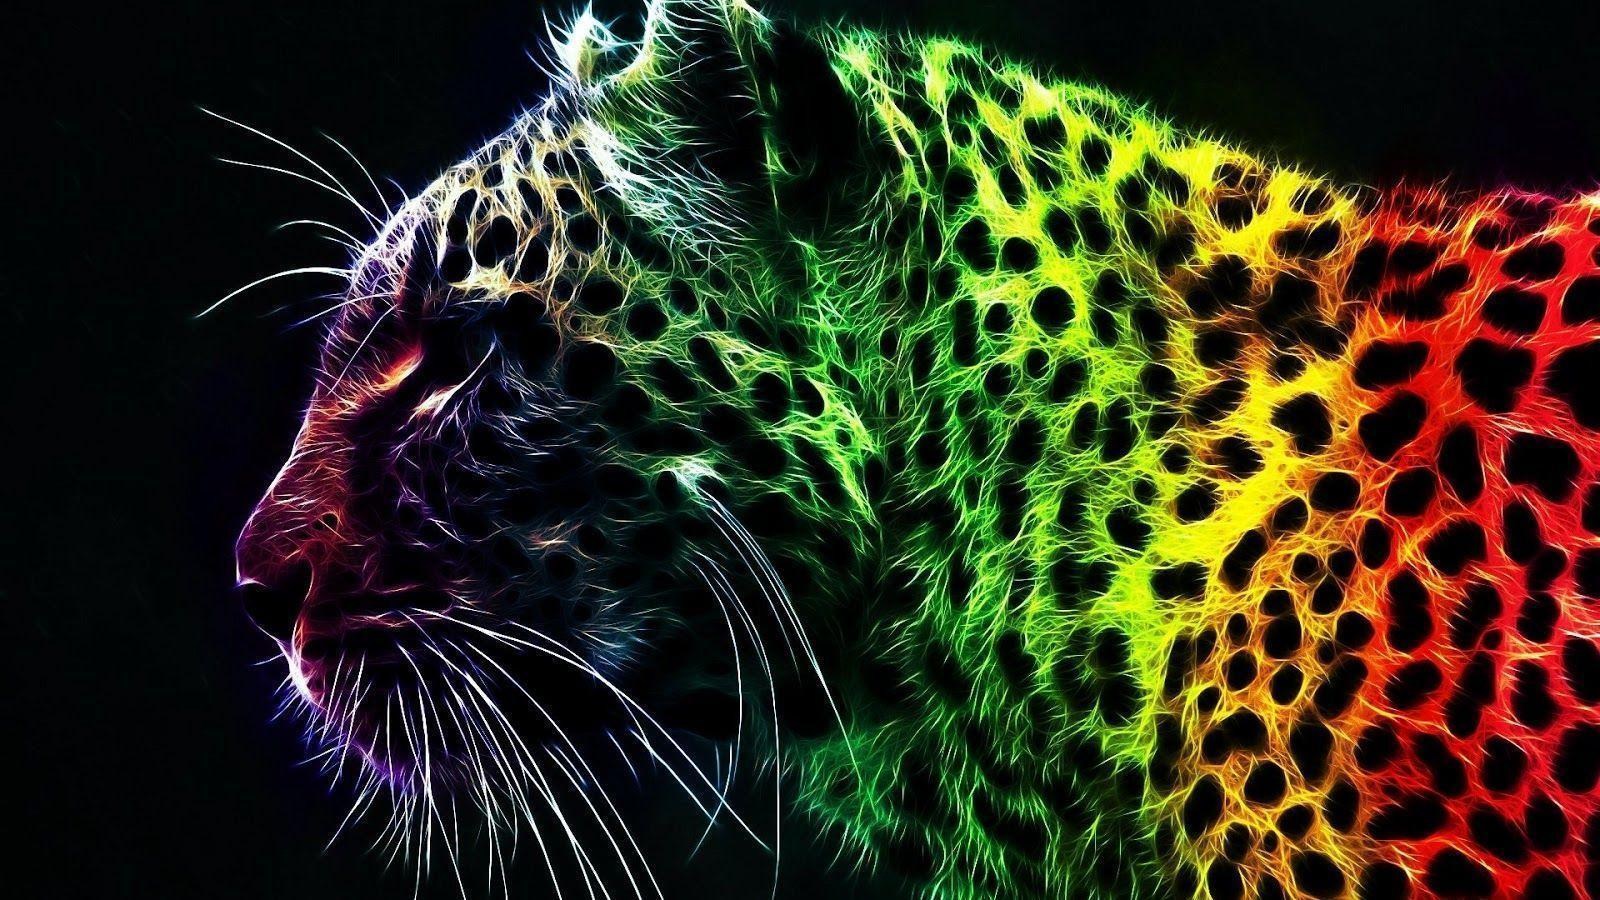 Wallpapers For > Cool Cheetah Wallpapers